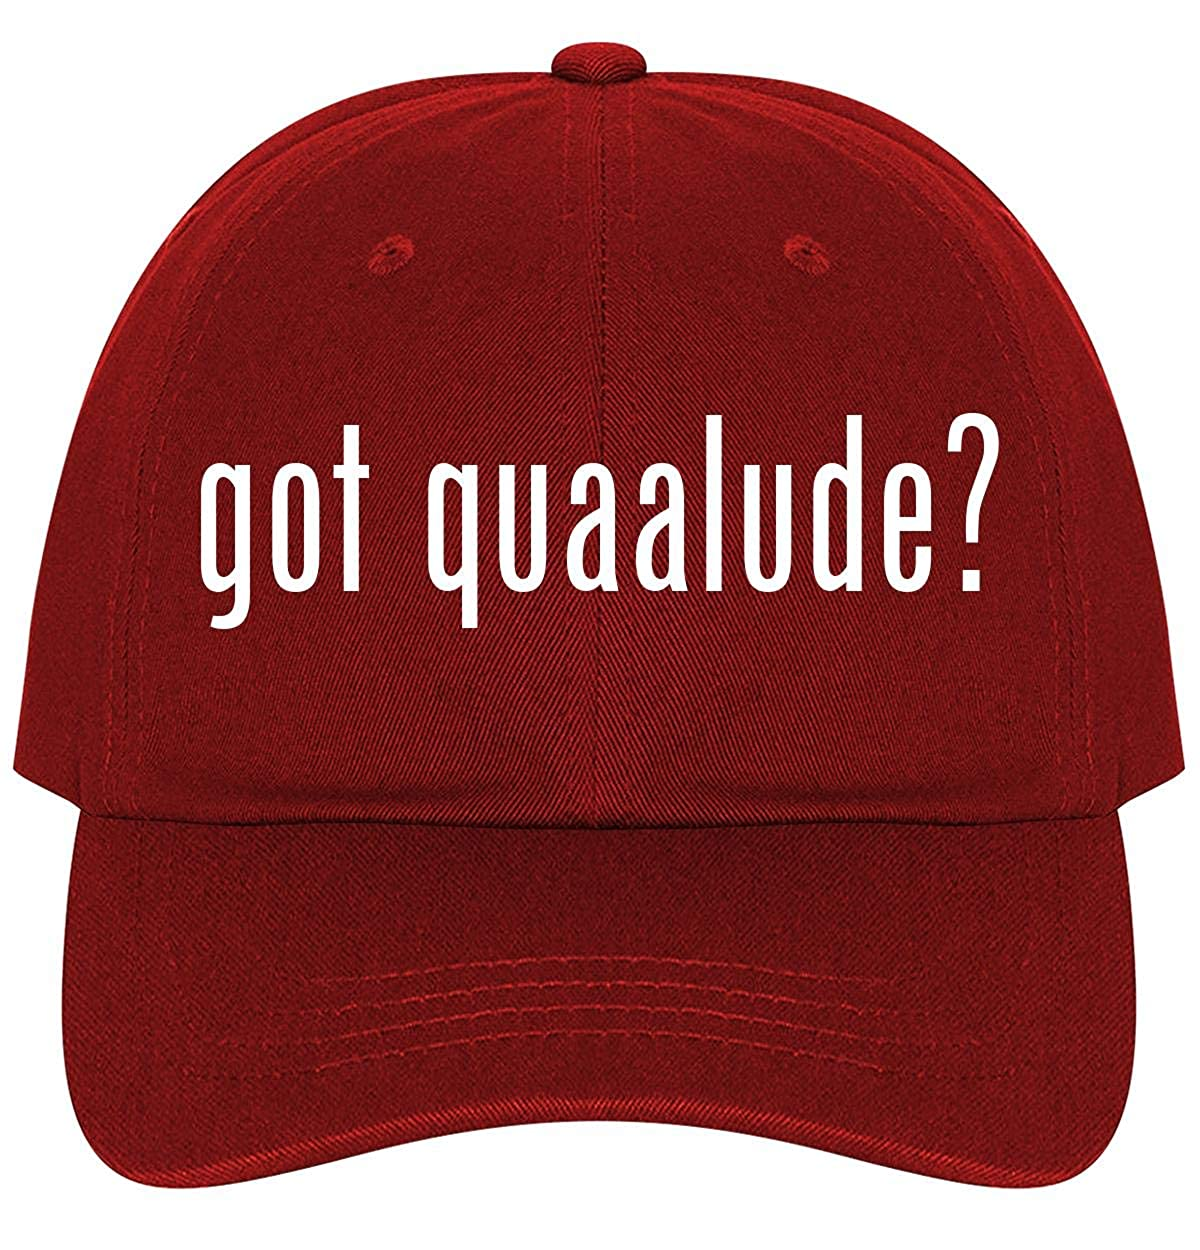 A Nice Comfortable Adjustable Dad Hat Cap The Town Butler got Quaalude?